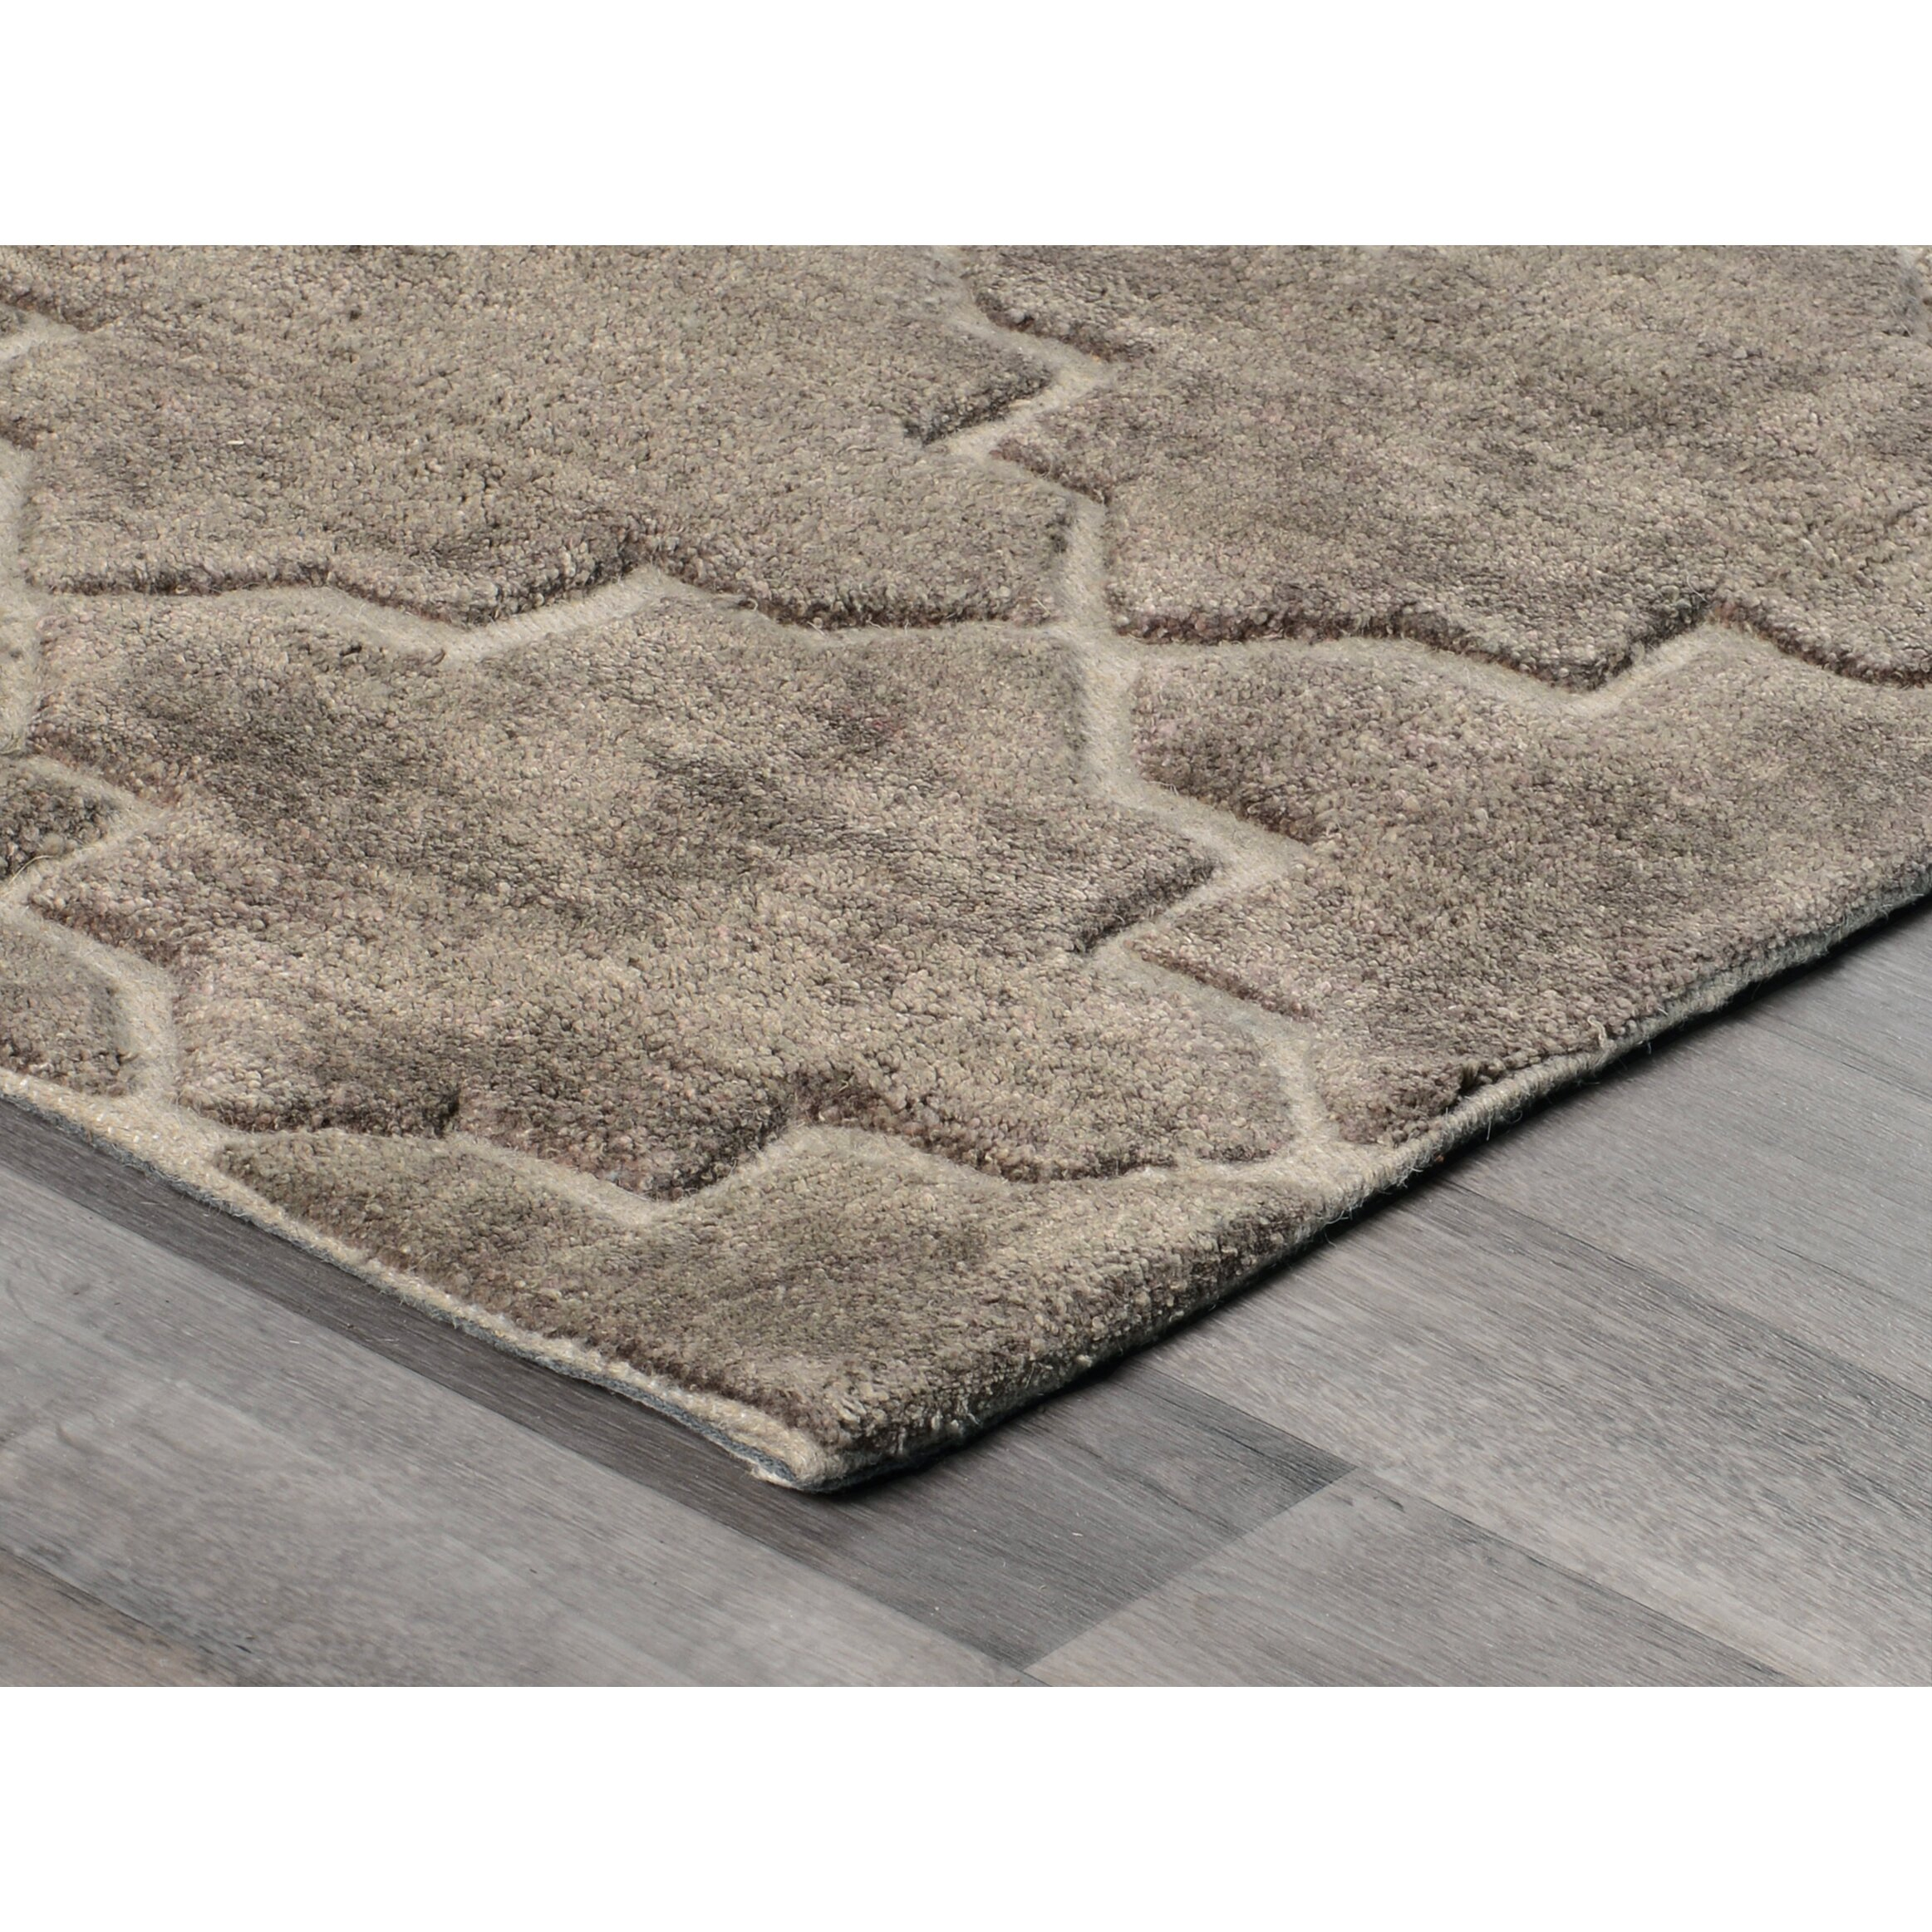 Le Rug With Neck Rugs Ideas